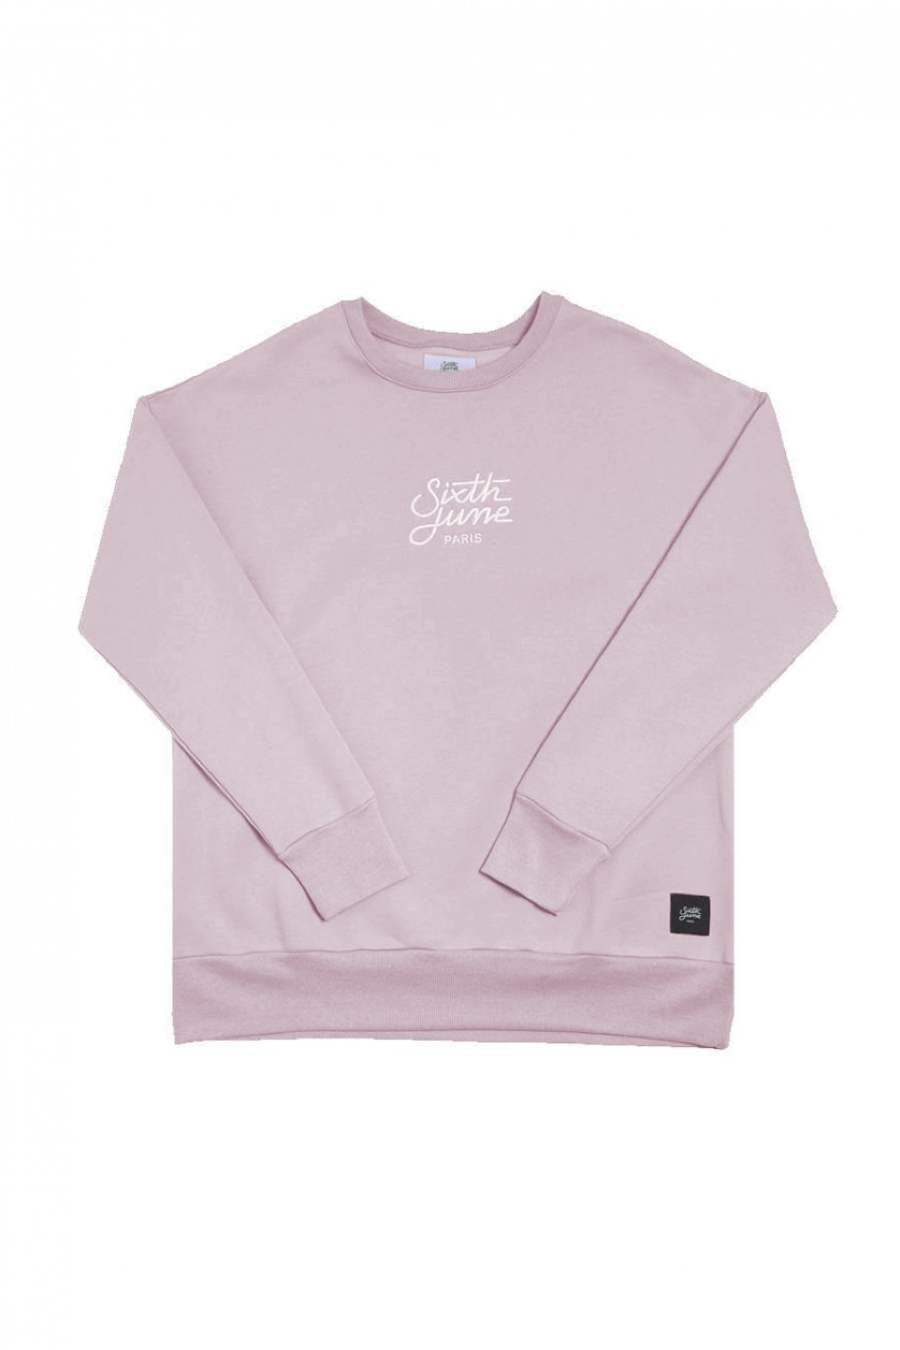 Sixth June Oversized Sweatshirt - Pink - 2